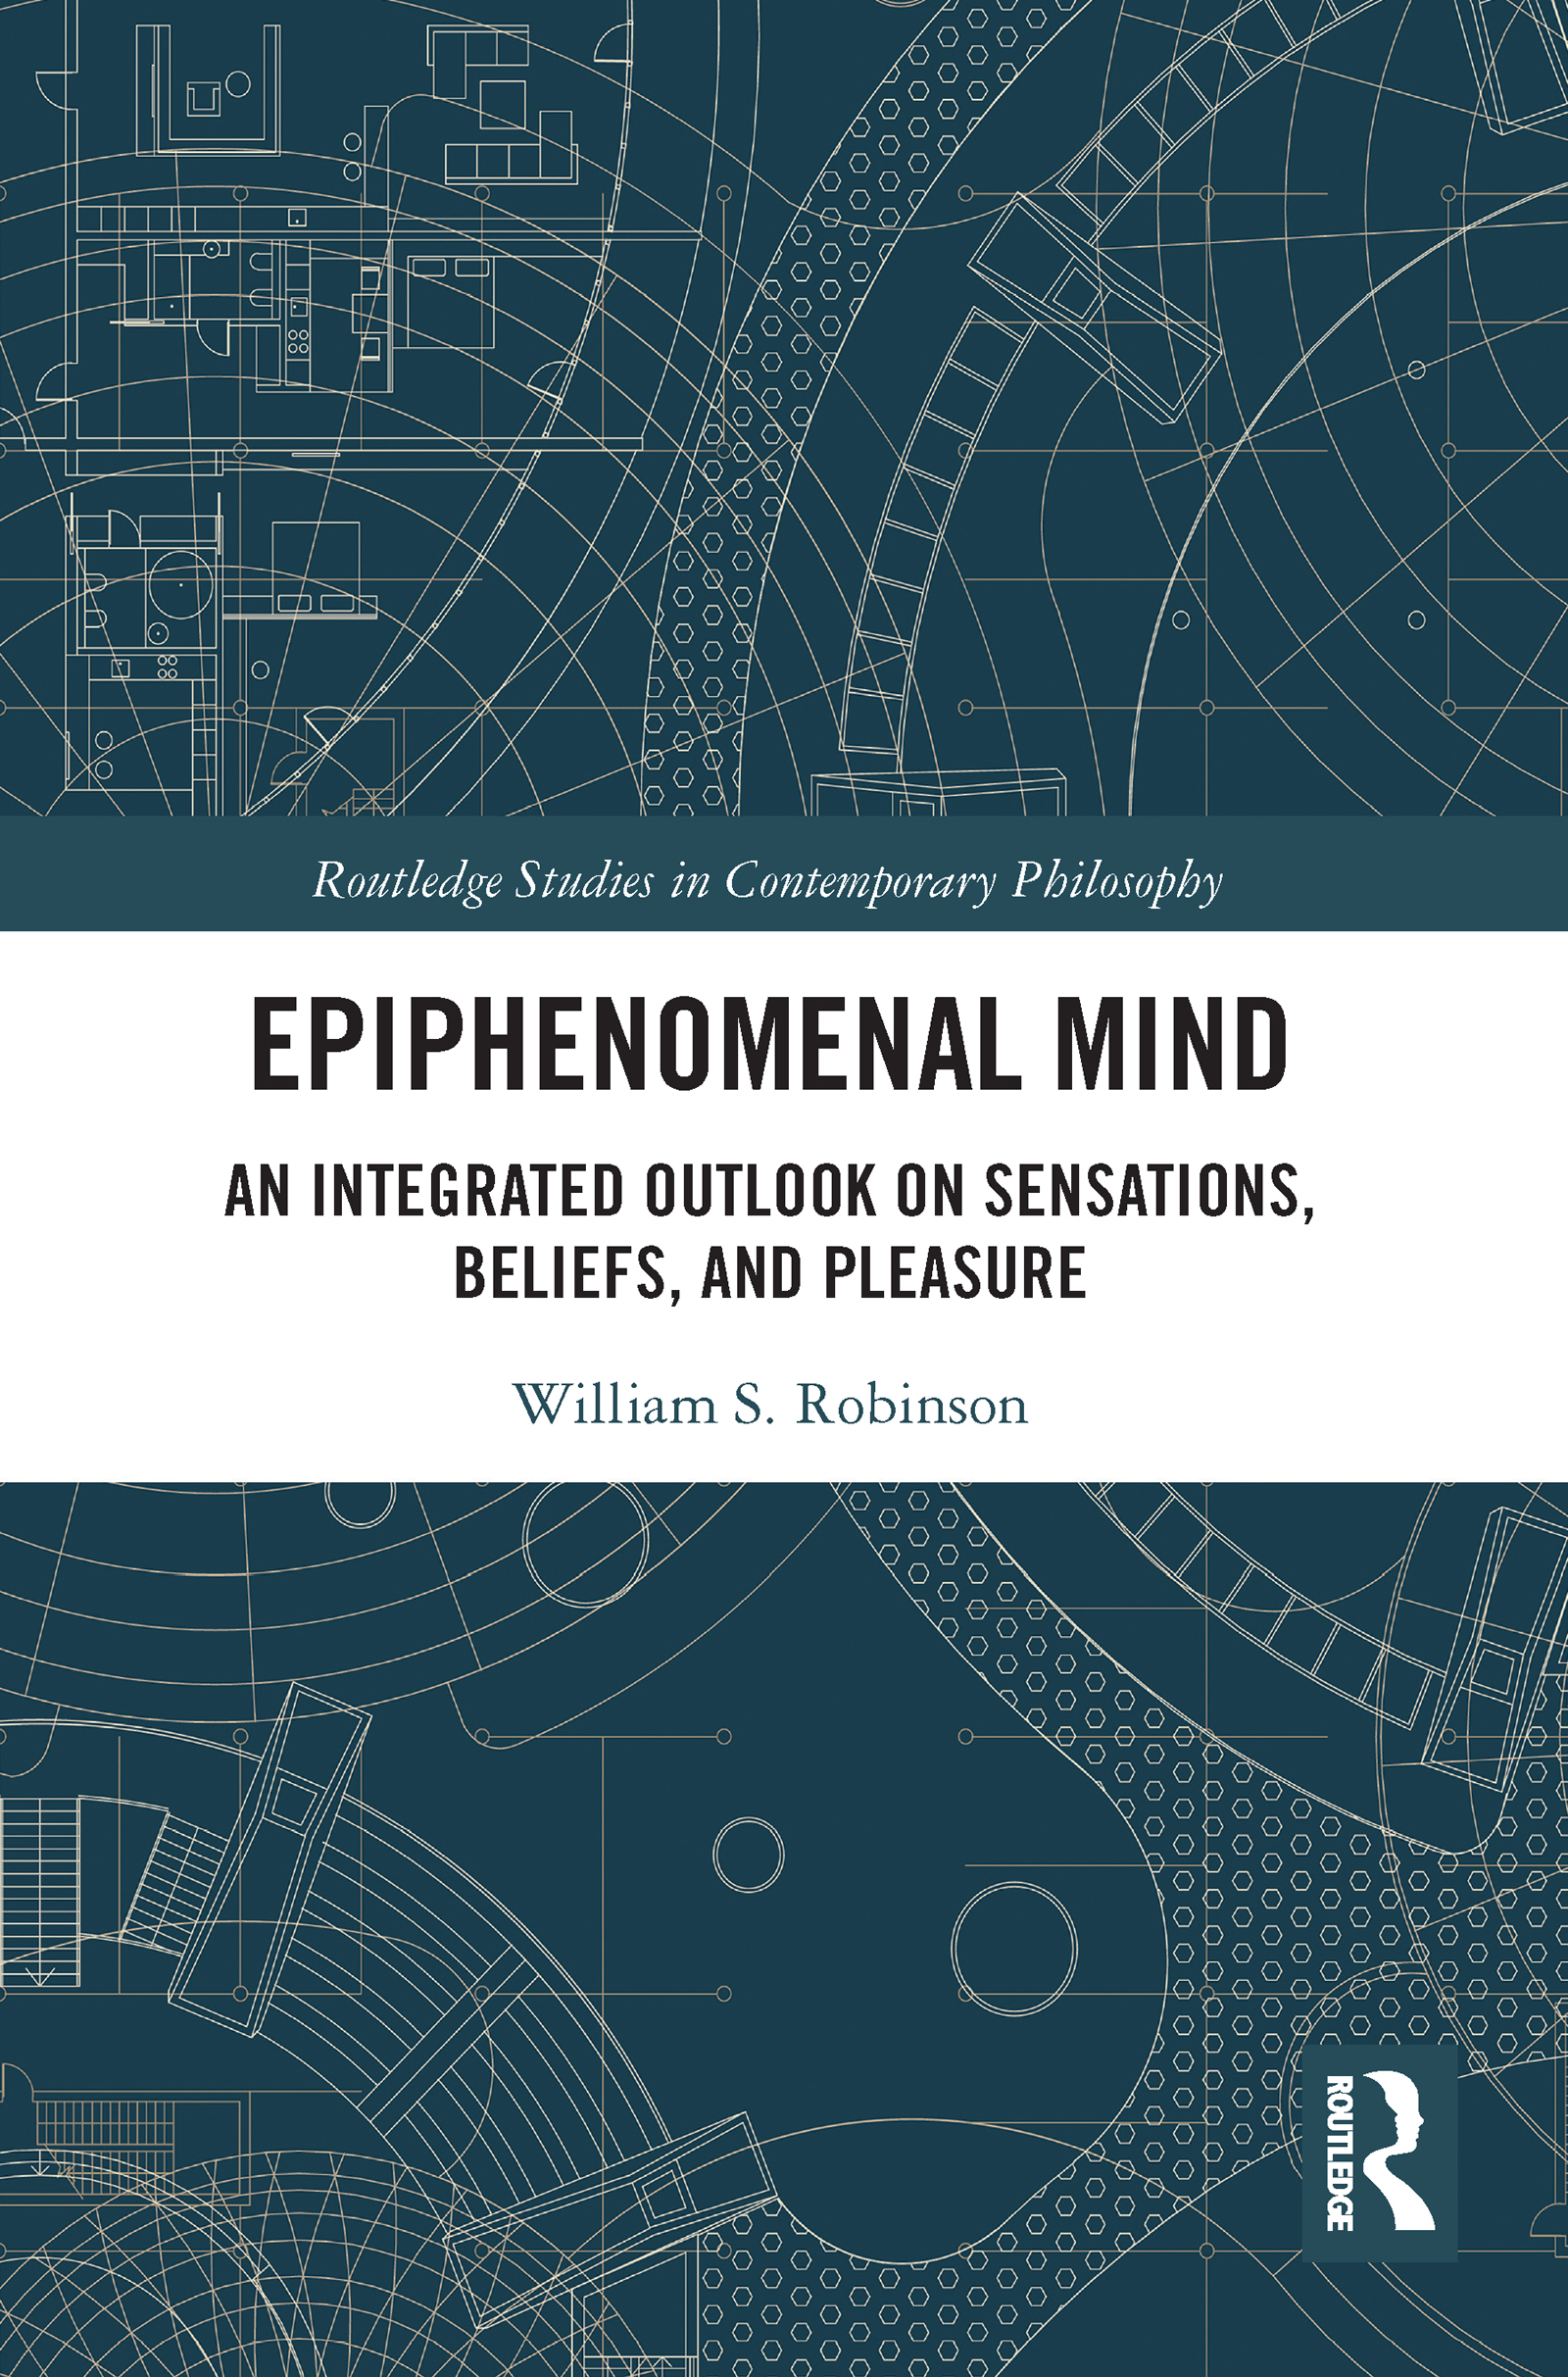 Epiphenomenal Mind